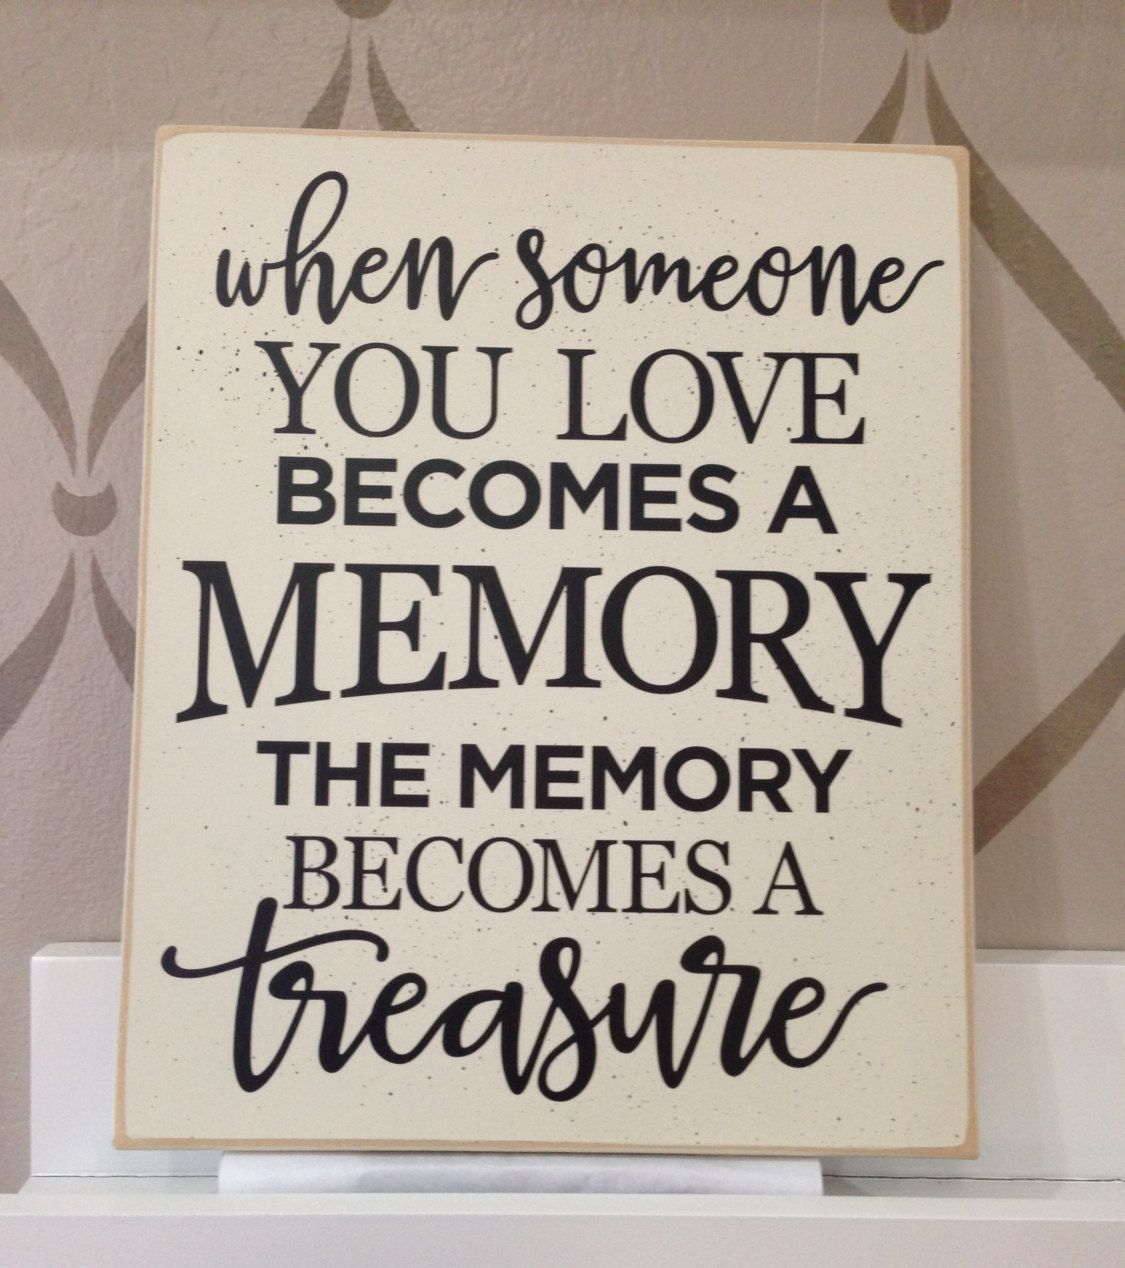 Wood Sign Design Ideas wood sign design ideas wood sign decor home decore inspiration When Someone You Love Becomes A Memory The Memory Becomes A Treasure Wood Sign